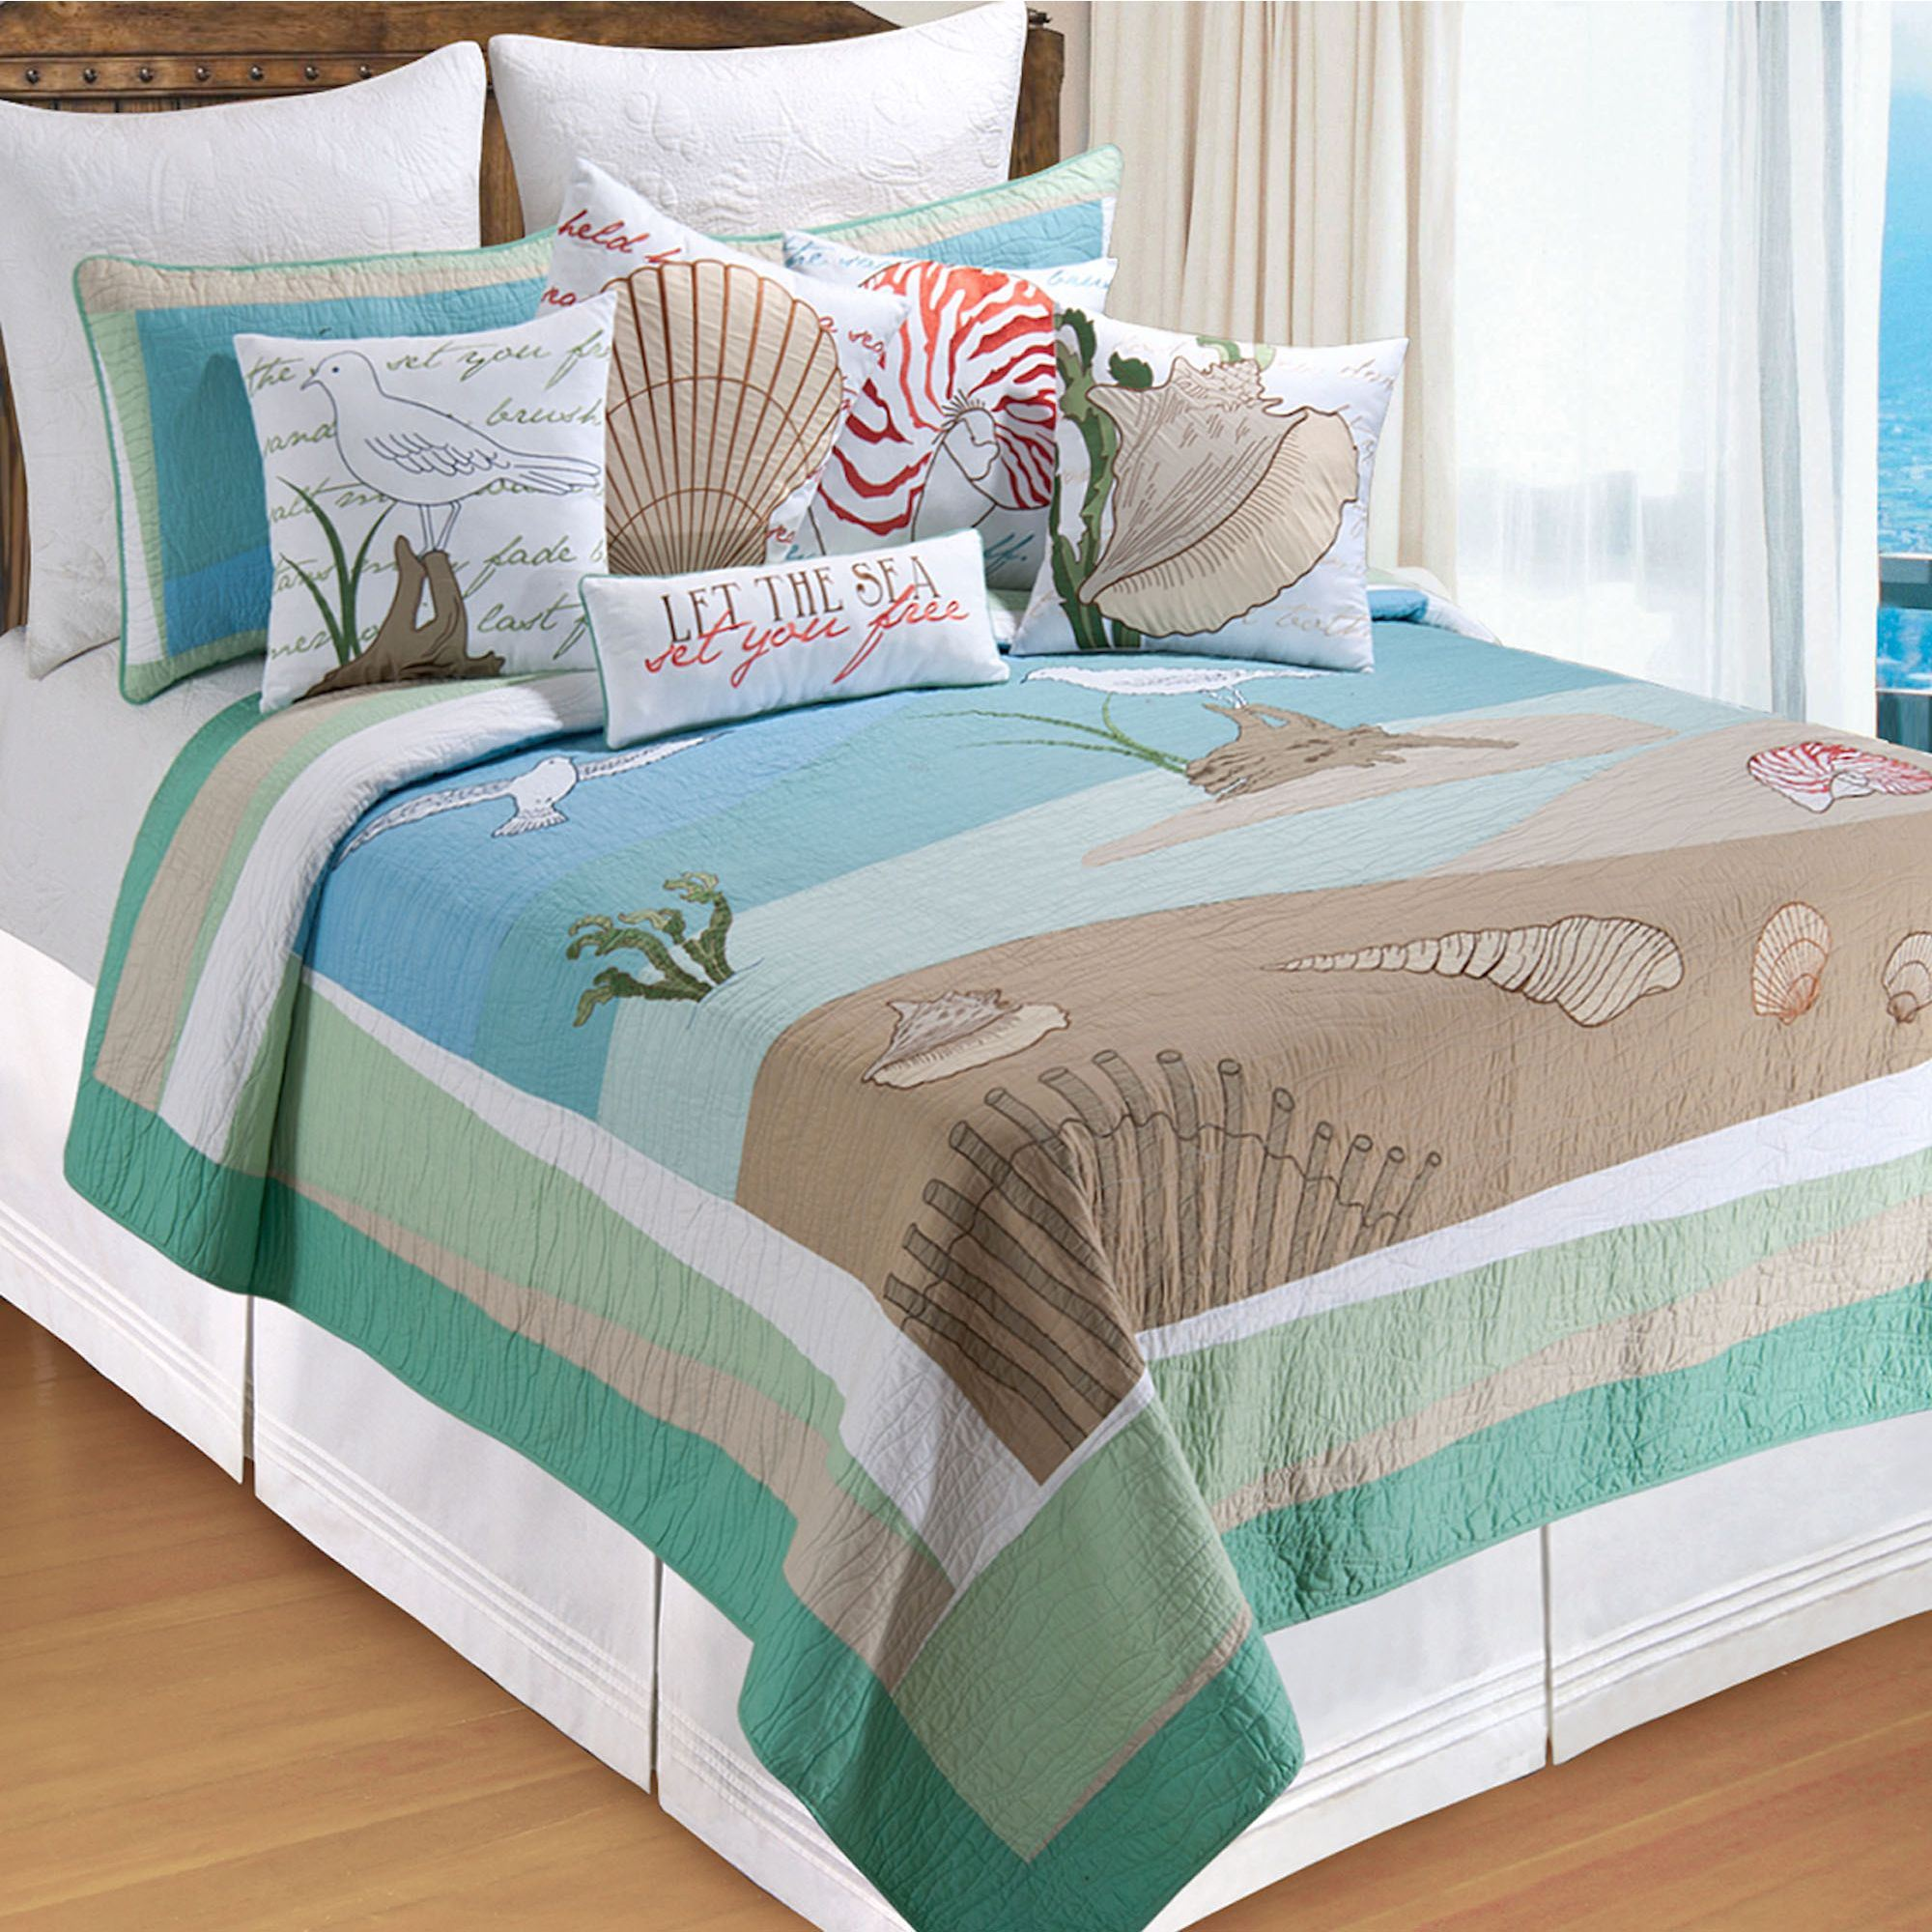 full covers design bright coastal bedding life themed room comforter doona size tropical king bedroom collection ocean bed beach sets quilts quilt cottage twin cover of sheets ideas